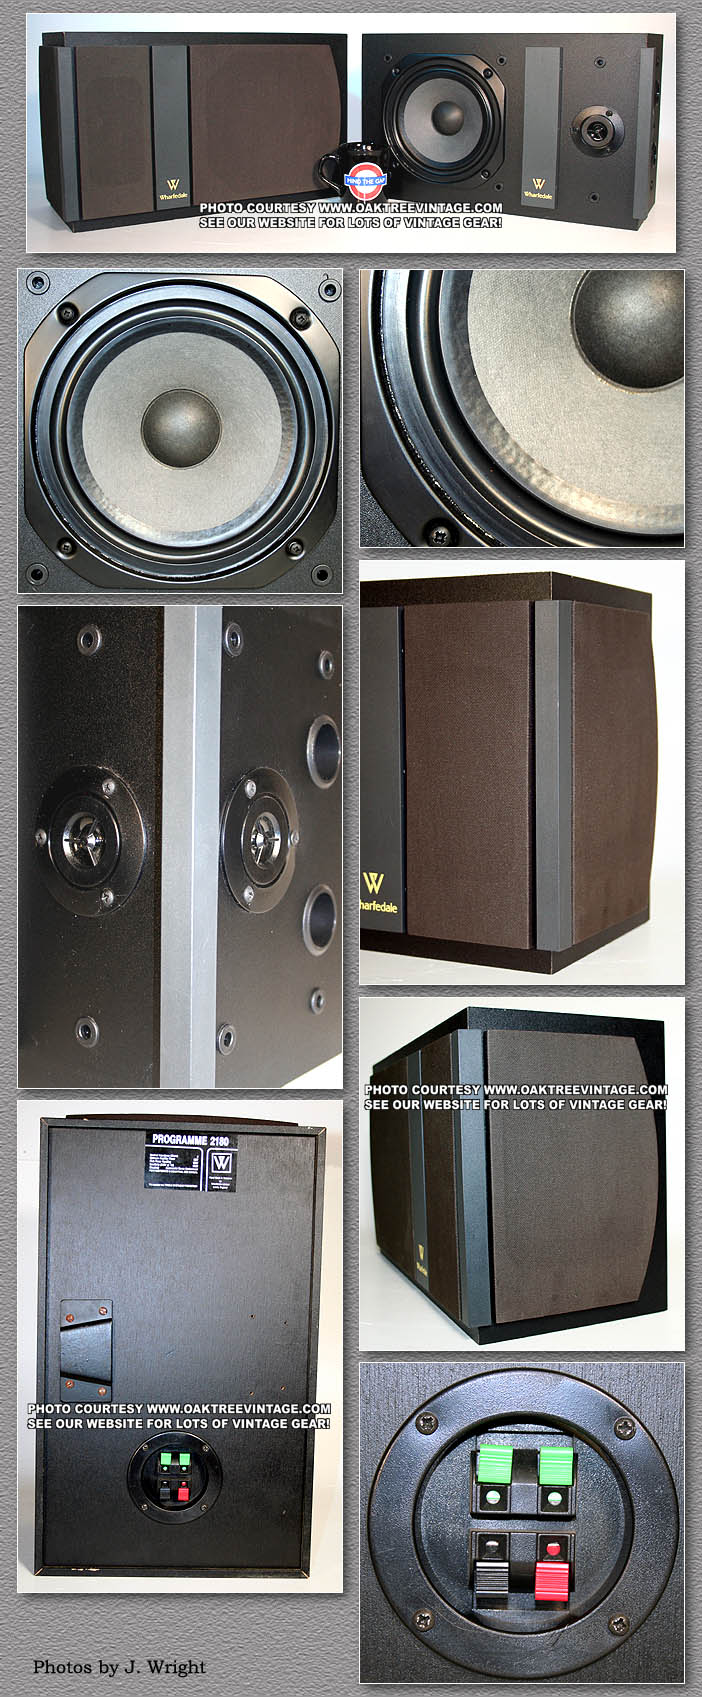 Wharfedale Speaker Parts For Vintage Wharfedales